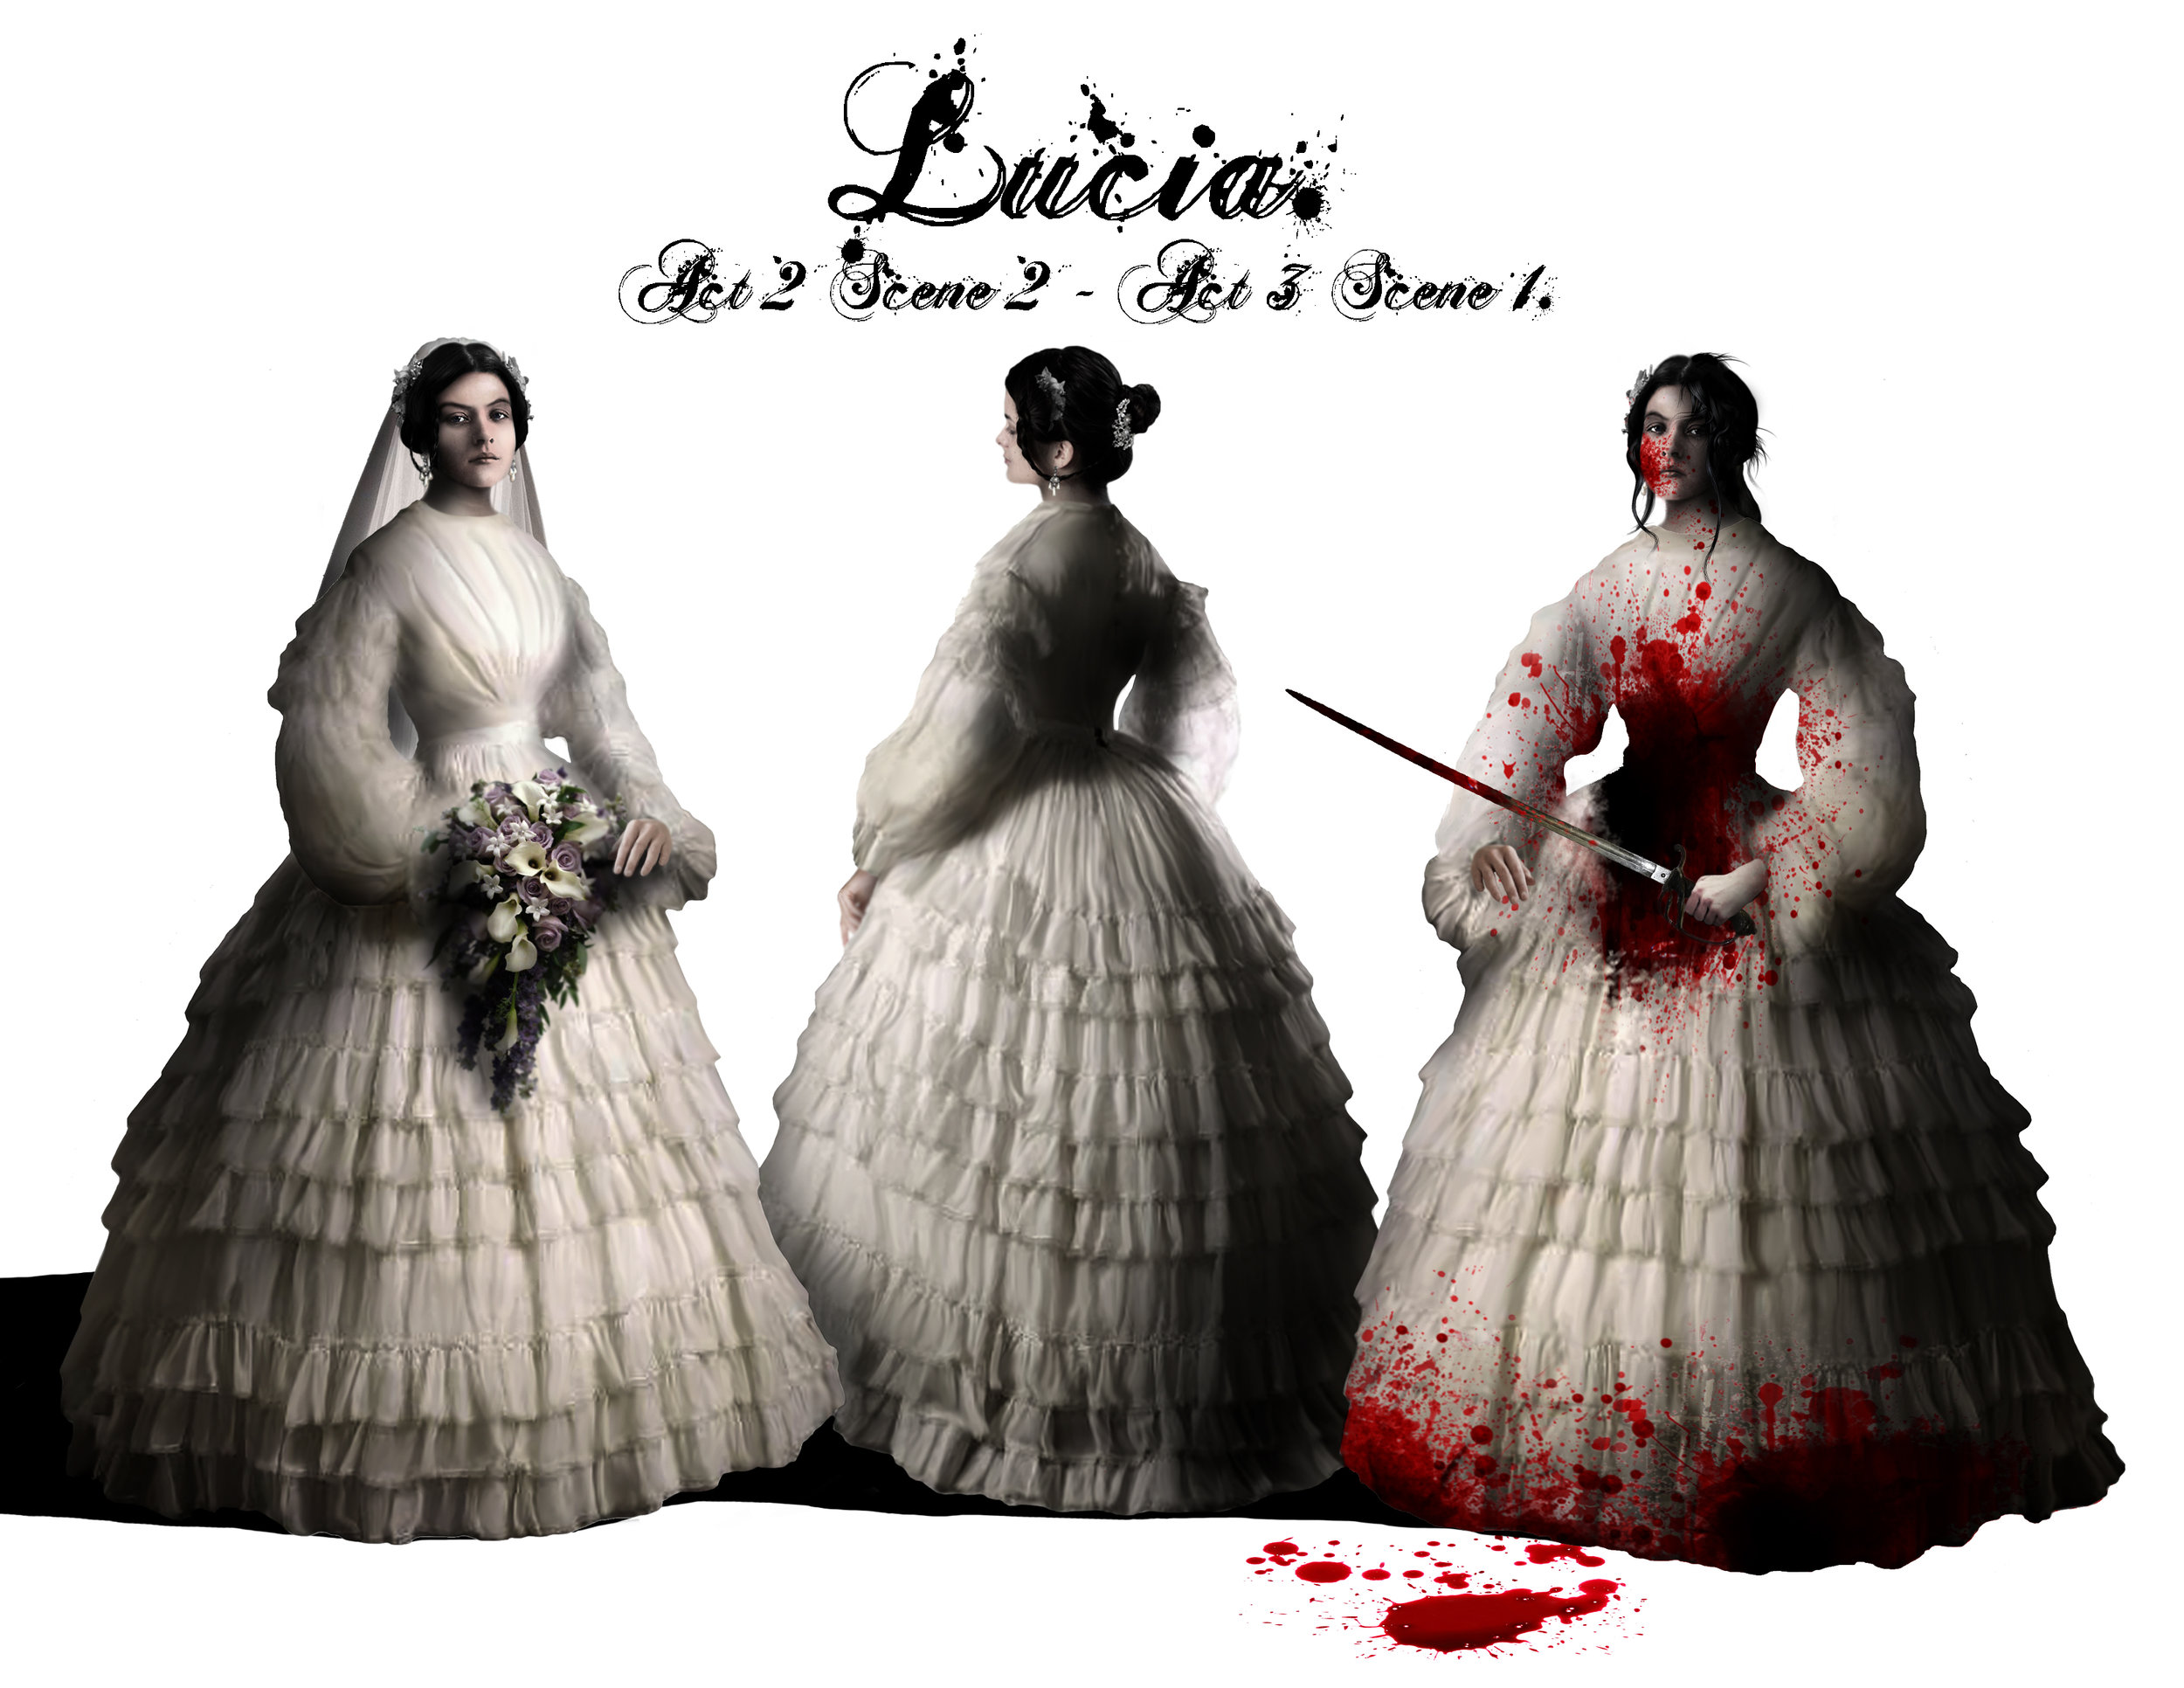 LUCIA - Costume Design - The Wedding Dress